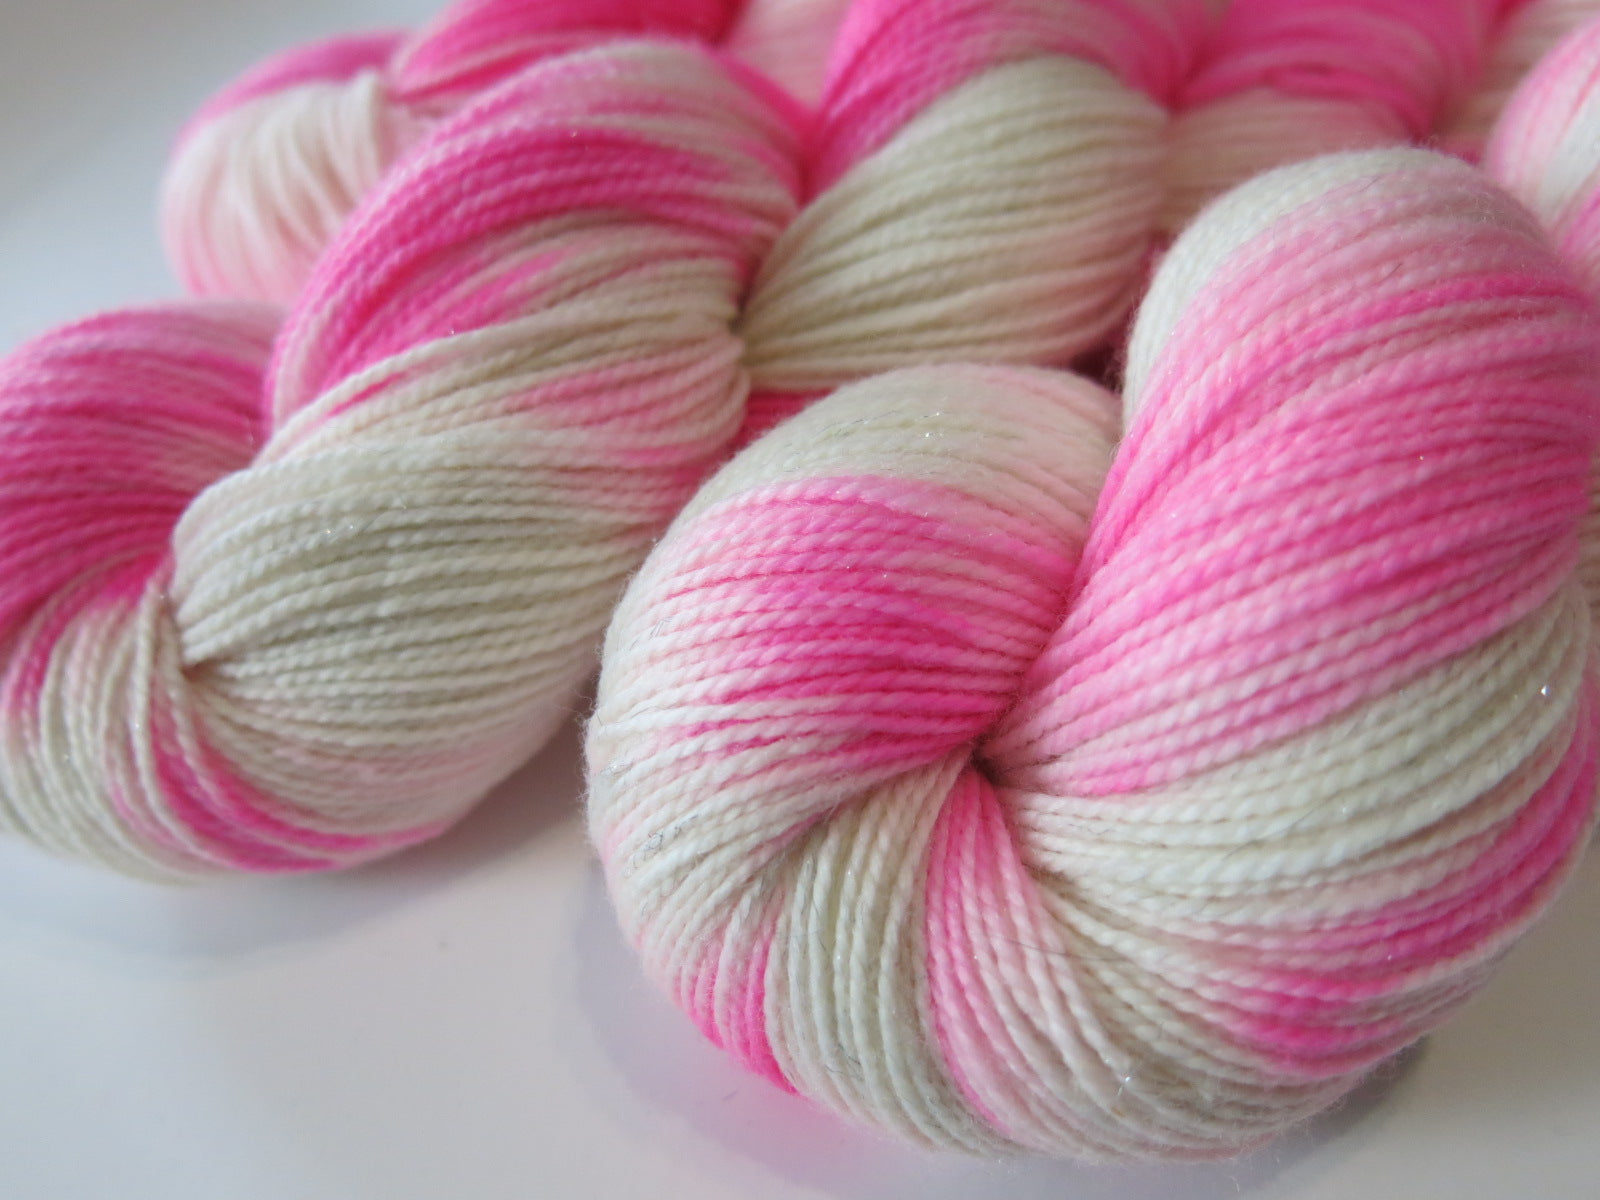 hot pink and white sock yarn for knitting and crochet